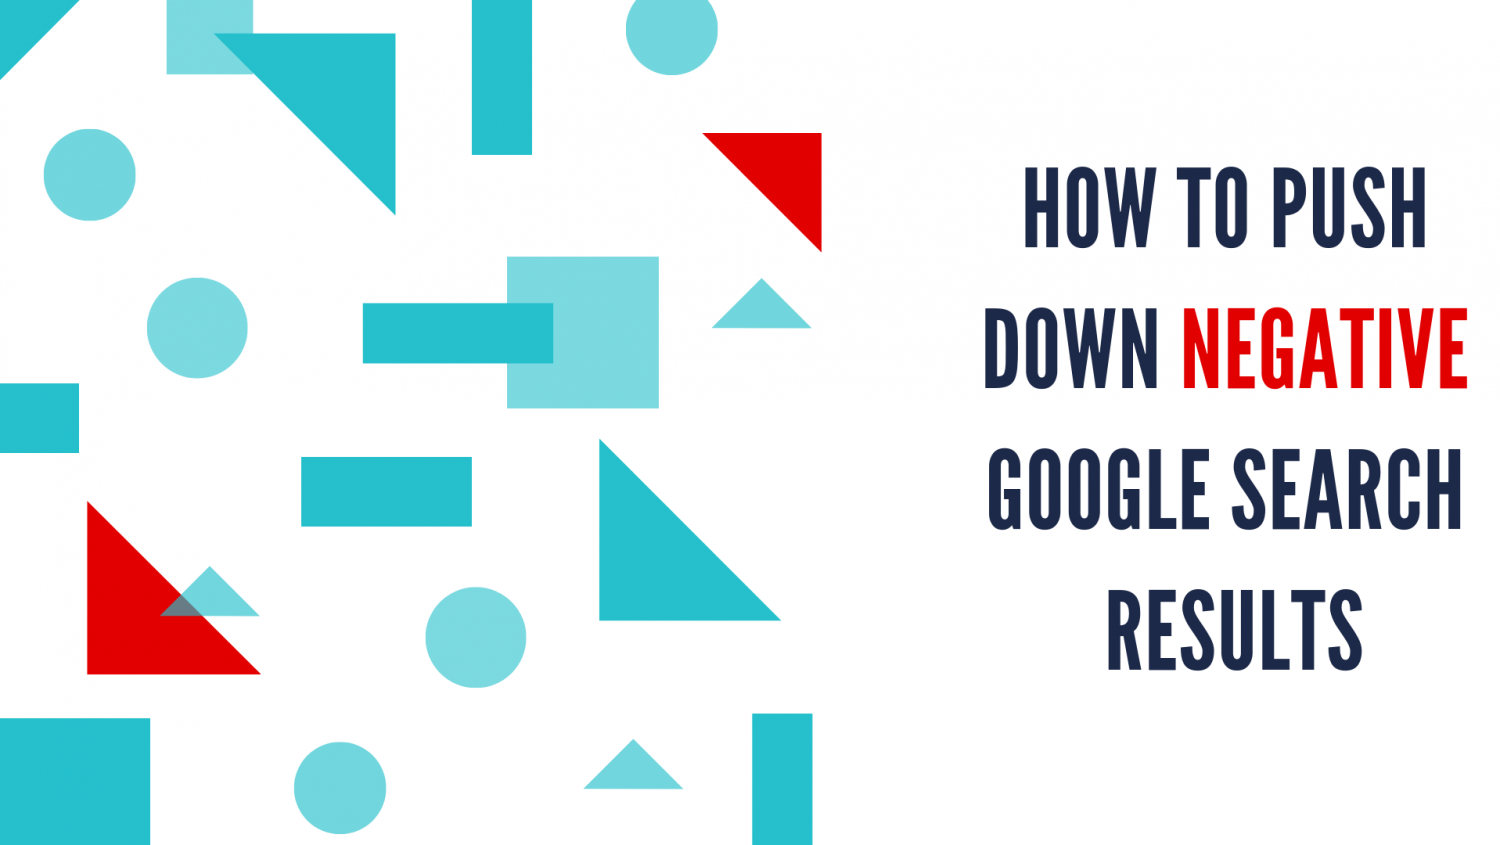 How to Push Down Negative Google Search Results